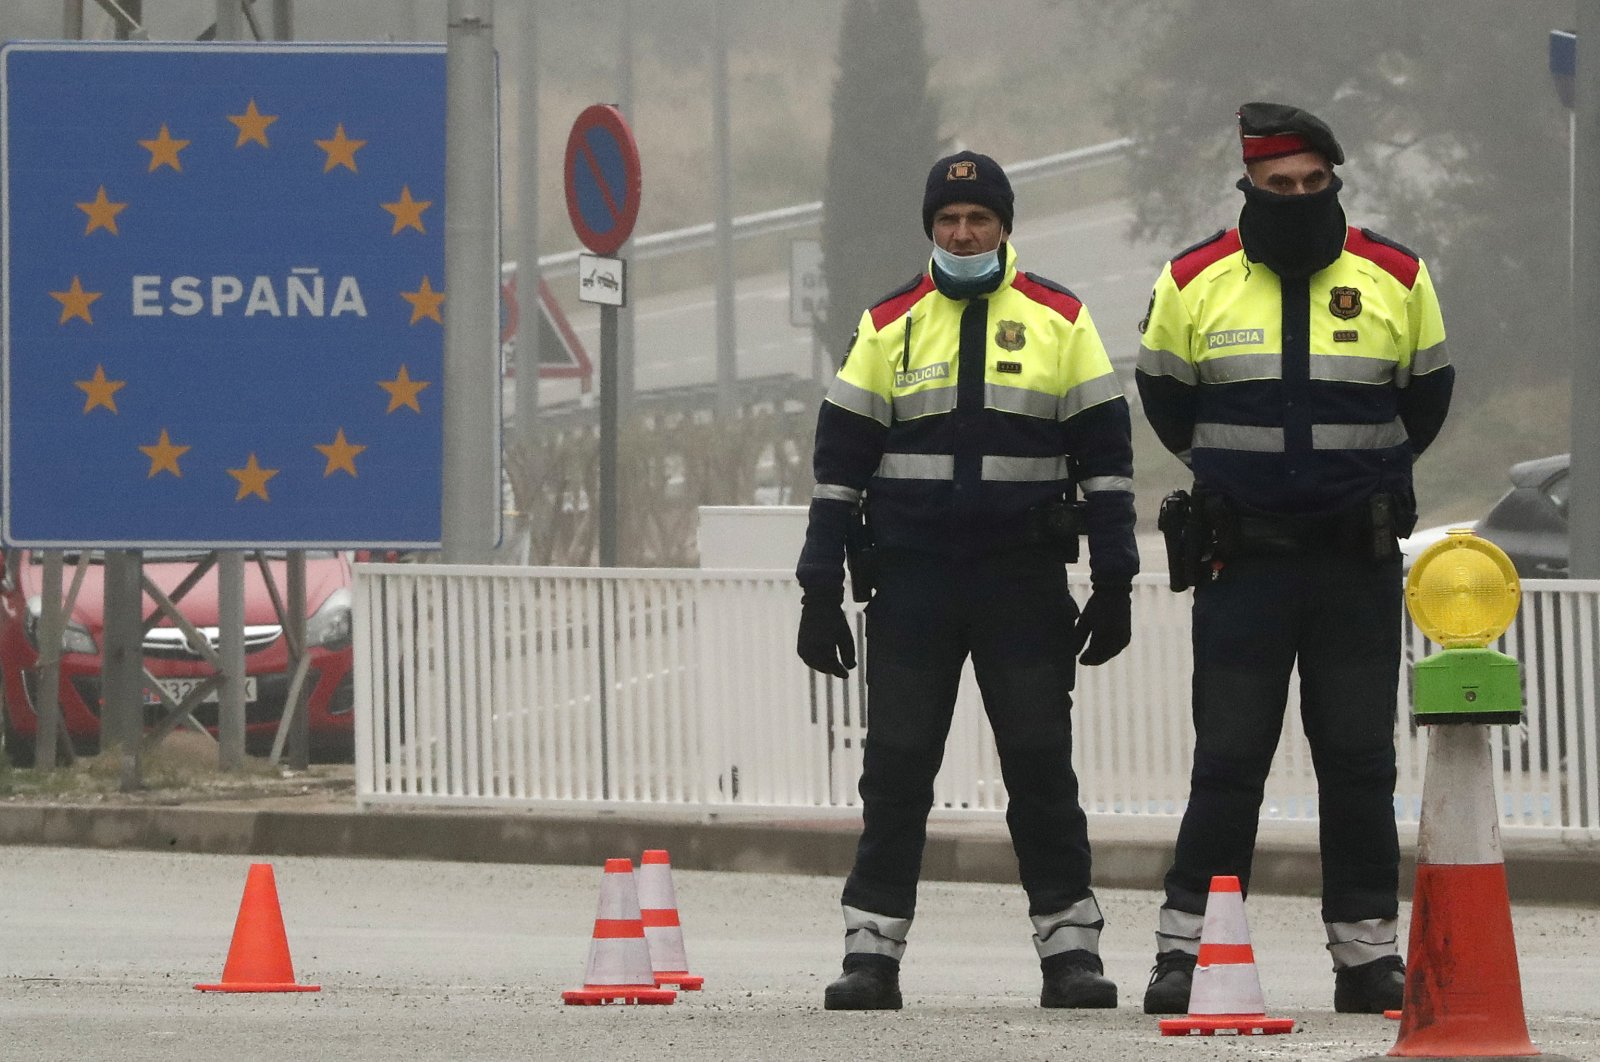 Policemen control the border crossing between Spain and France at Le Perthus, France, March 17, 2020. (EPA Photo)